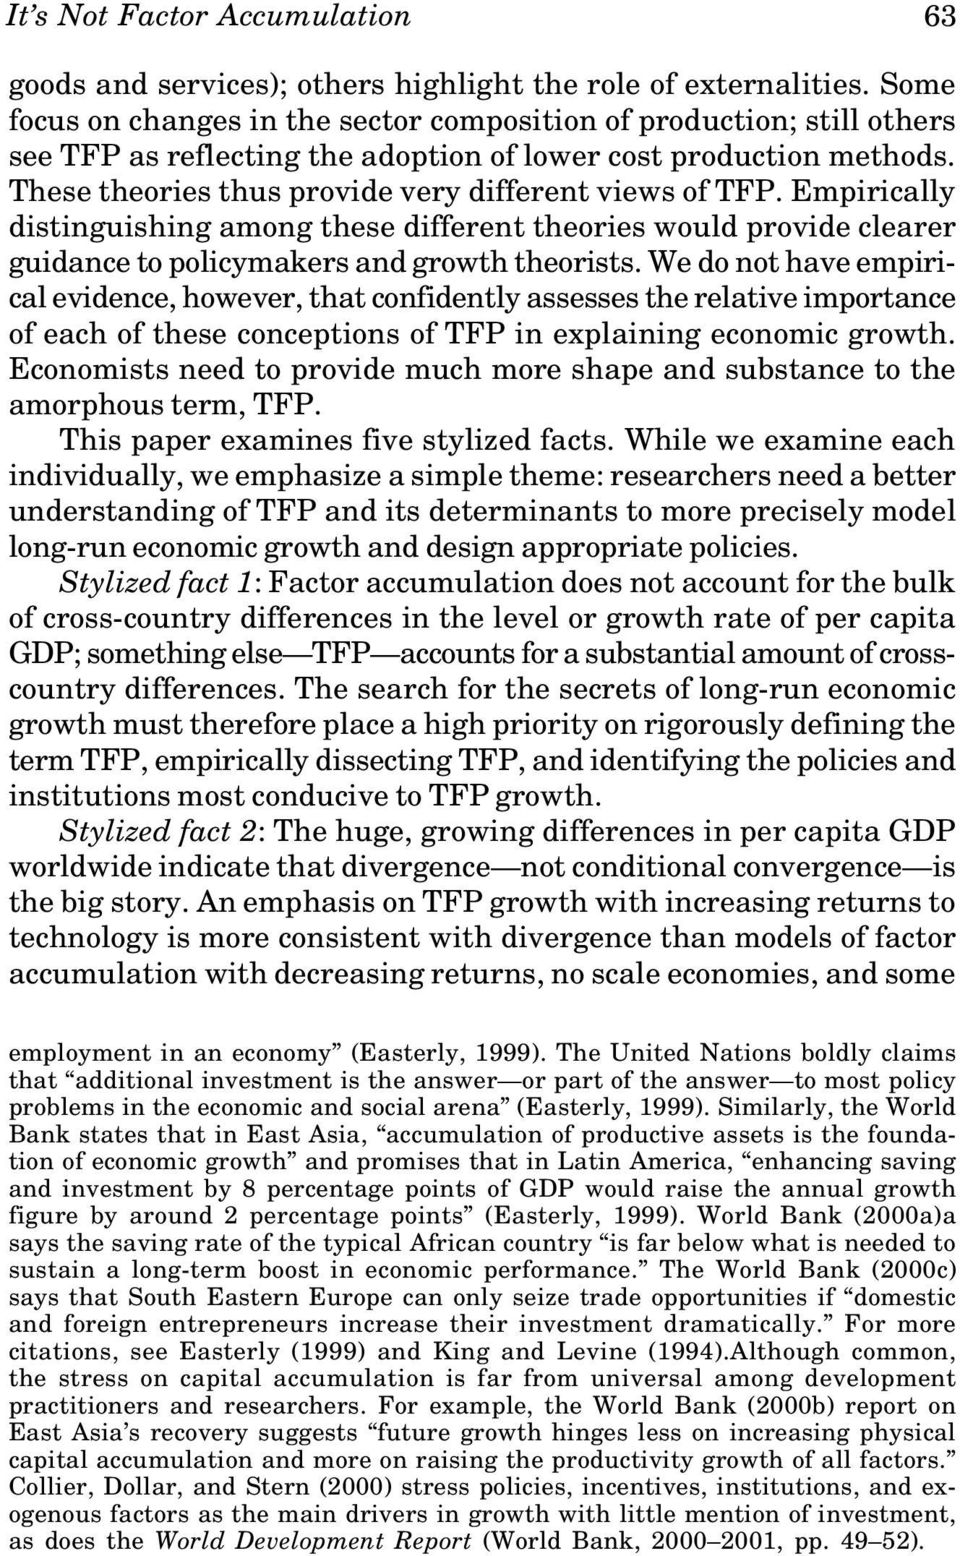 These theories thus provide very different views of TFP. Empirically distinguishing among these different theories would provide clearer guidance to policymakers and growth theorists.